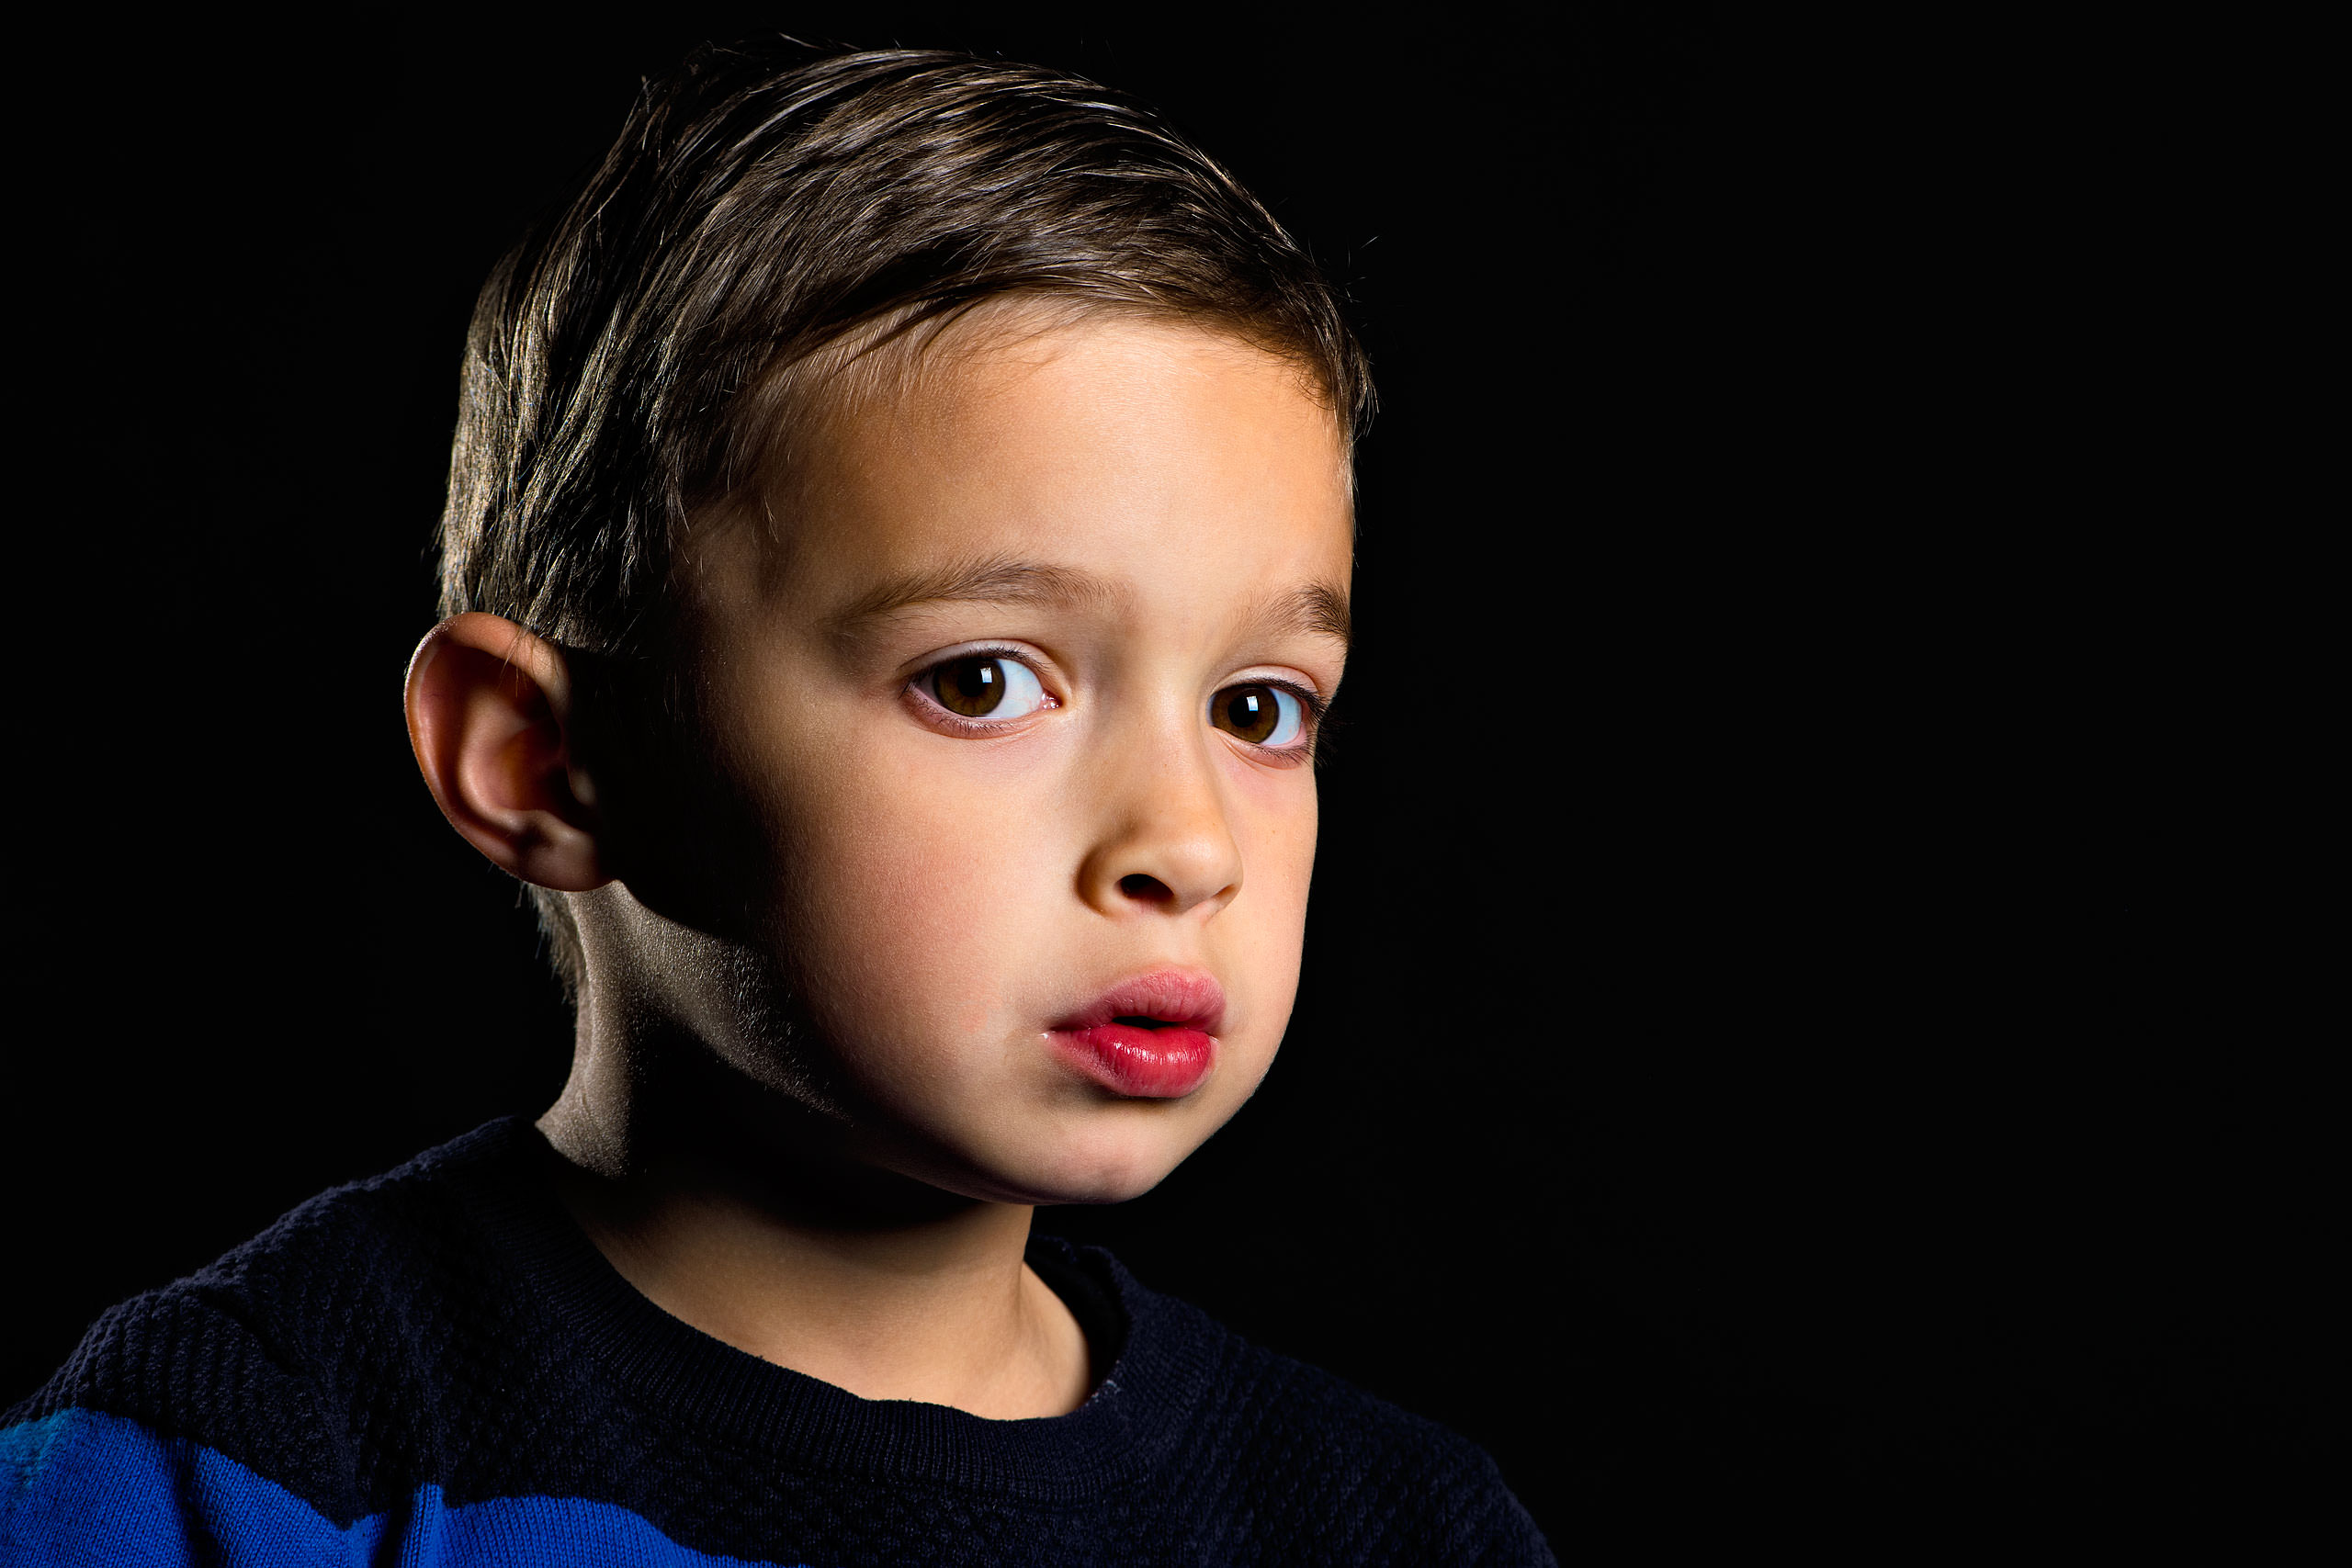 a young boy not smiling for a calgary portrait studio session by sean leblanc